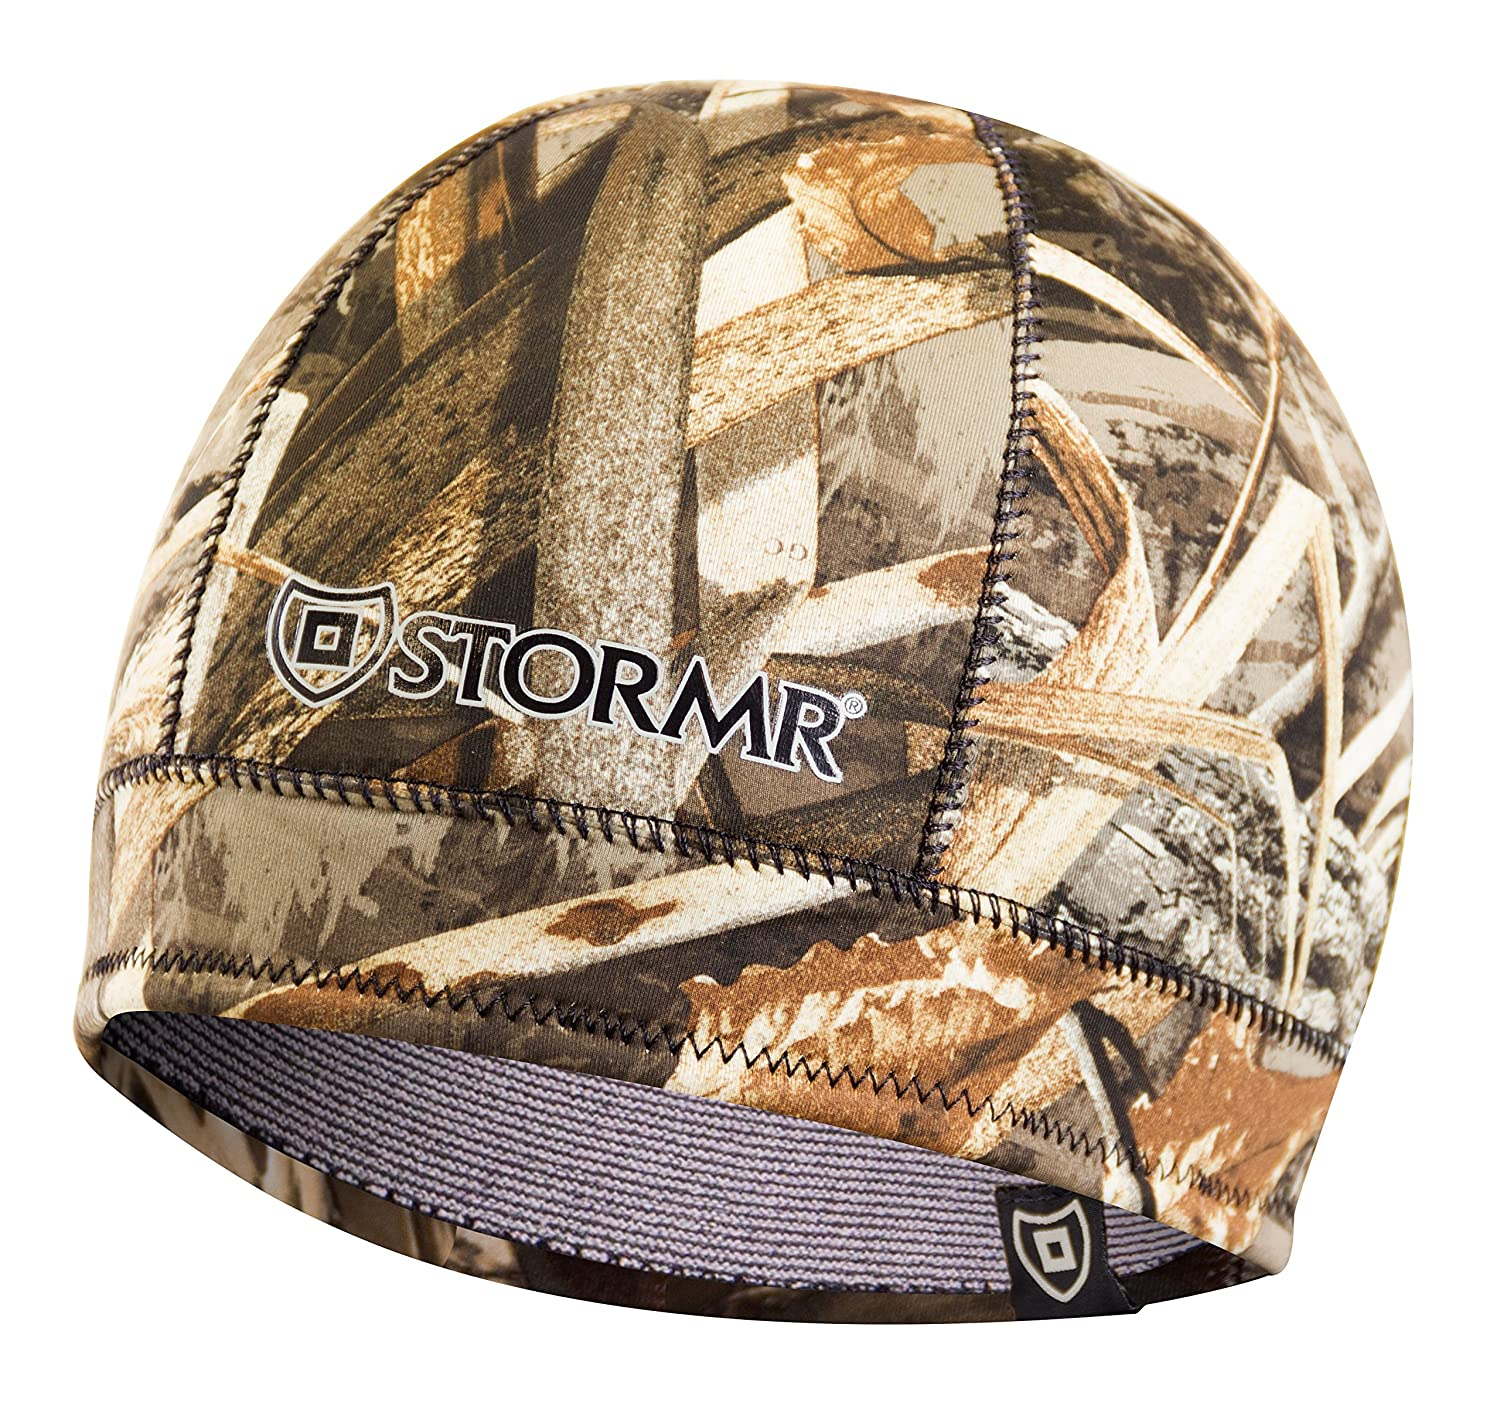 a15d1a18 Stormr Mens and Womens Waterproof Windproof 3 MM Premium Micro-Fleece Lined  Neoprene Beanie best used for Hunting, Waterfowlers, Winter, Snow, ...